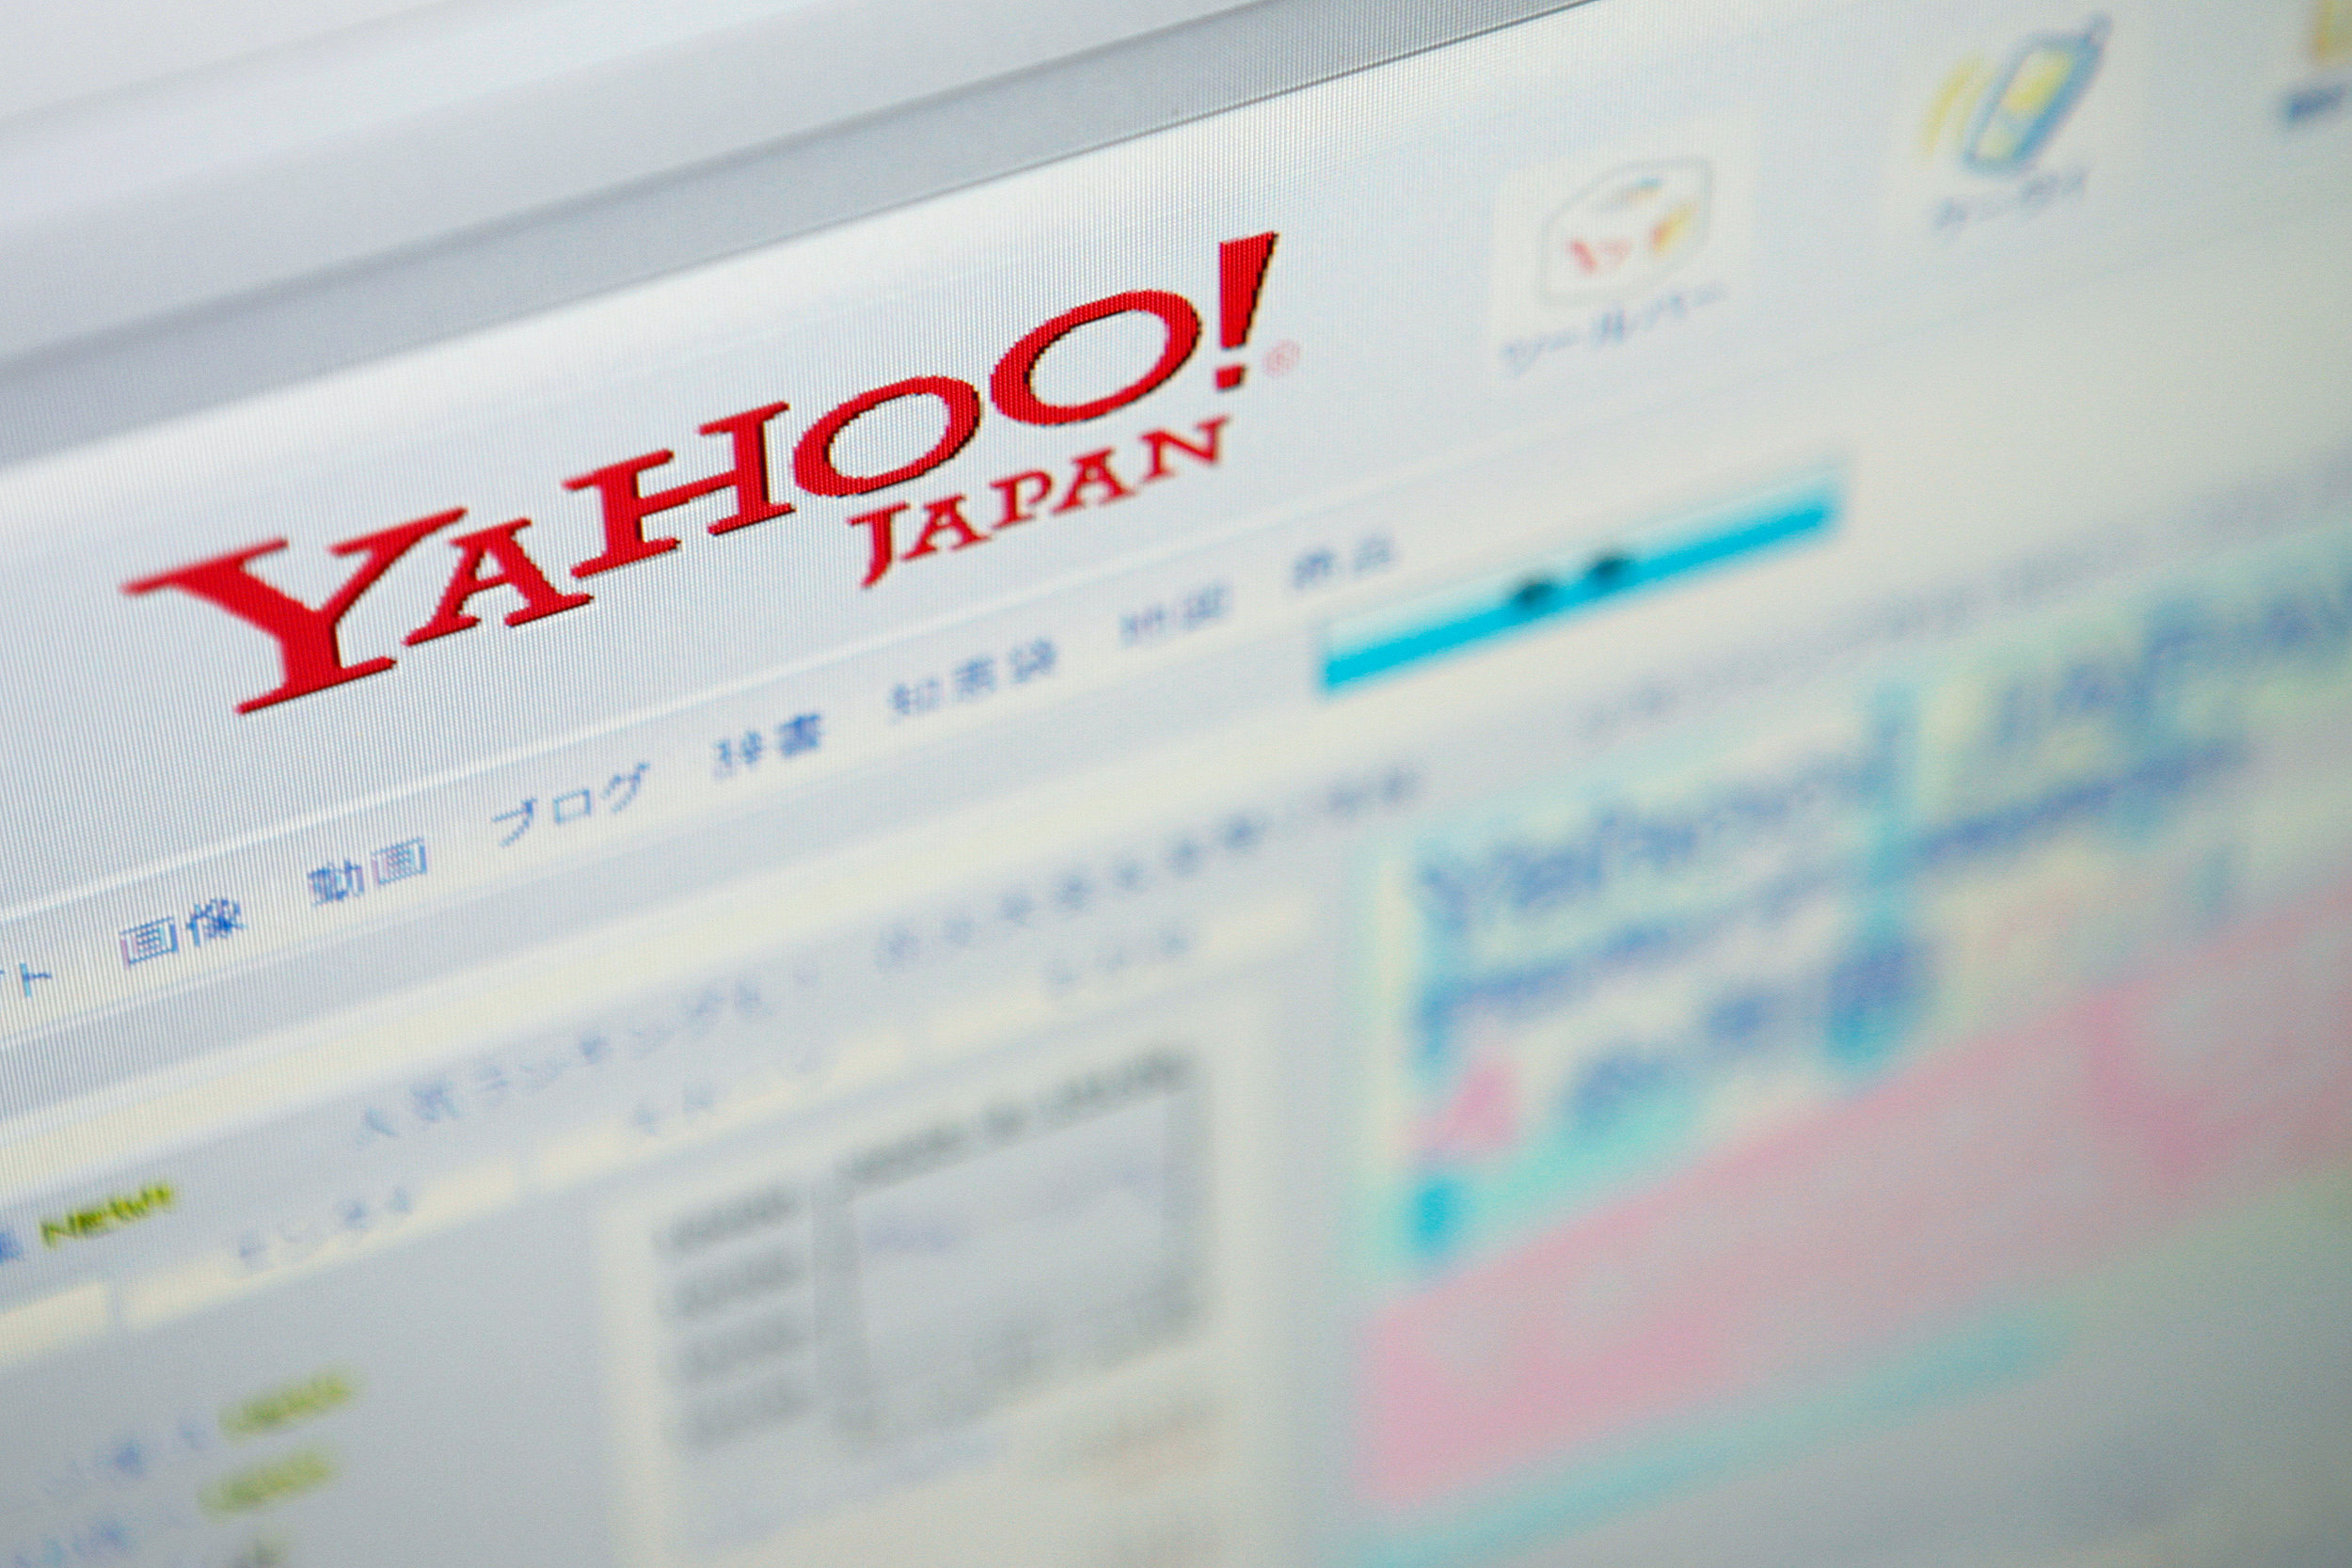 A website of Yahoo Japan Corp is seen on a computer screen in Tokyo